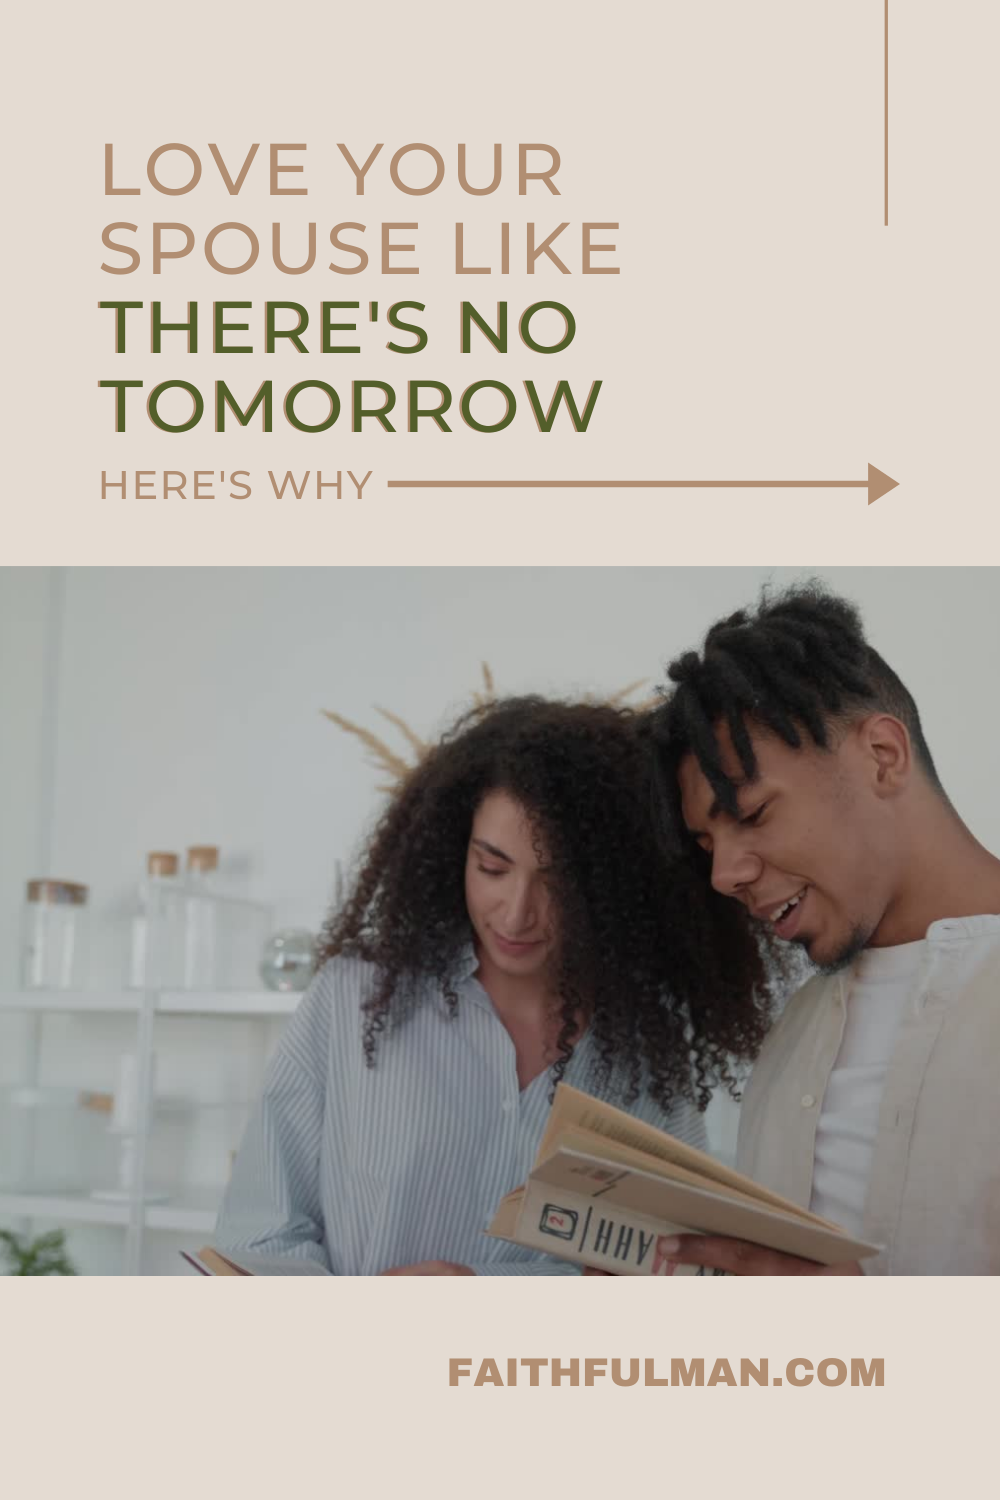 We aren't promised tomorrow, so love your spouse TODAY! If you were gone tomorrow, would your spouse know beyond a doubt that you loved them? Or if they were gone tomorrow, did you do all you could to love them well? What is the last memory they'll have of you? Loving your wife matters... loving your husband matters... today. via @faithful_man